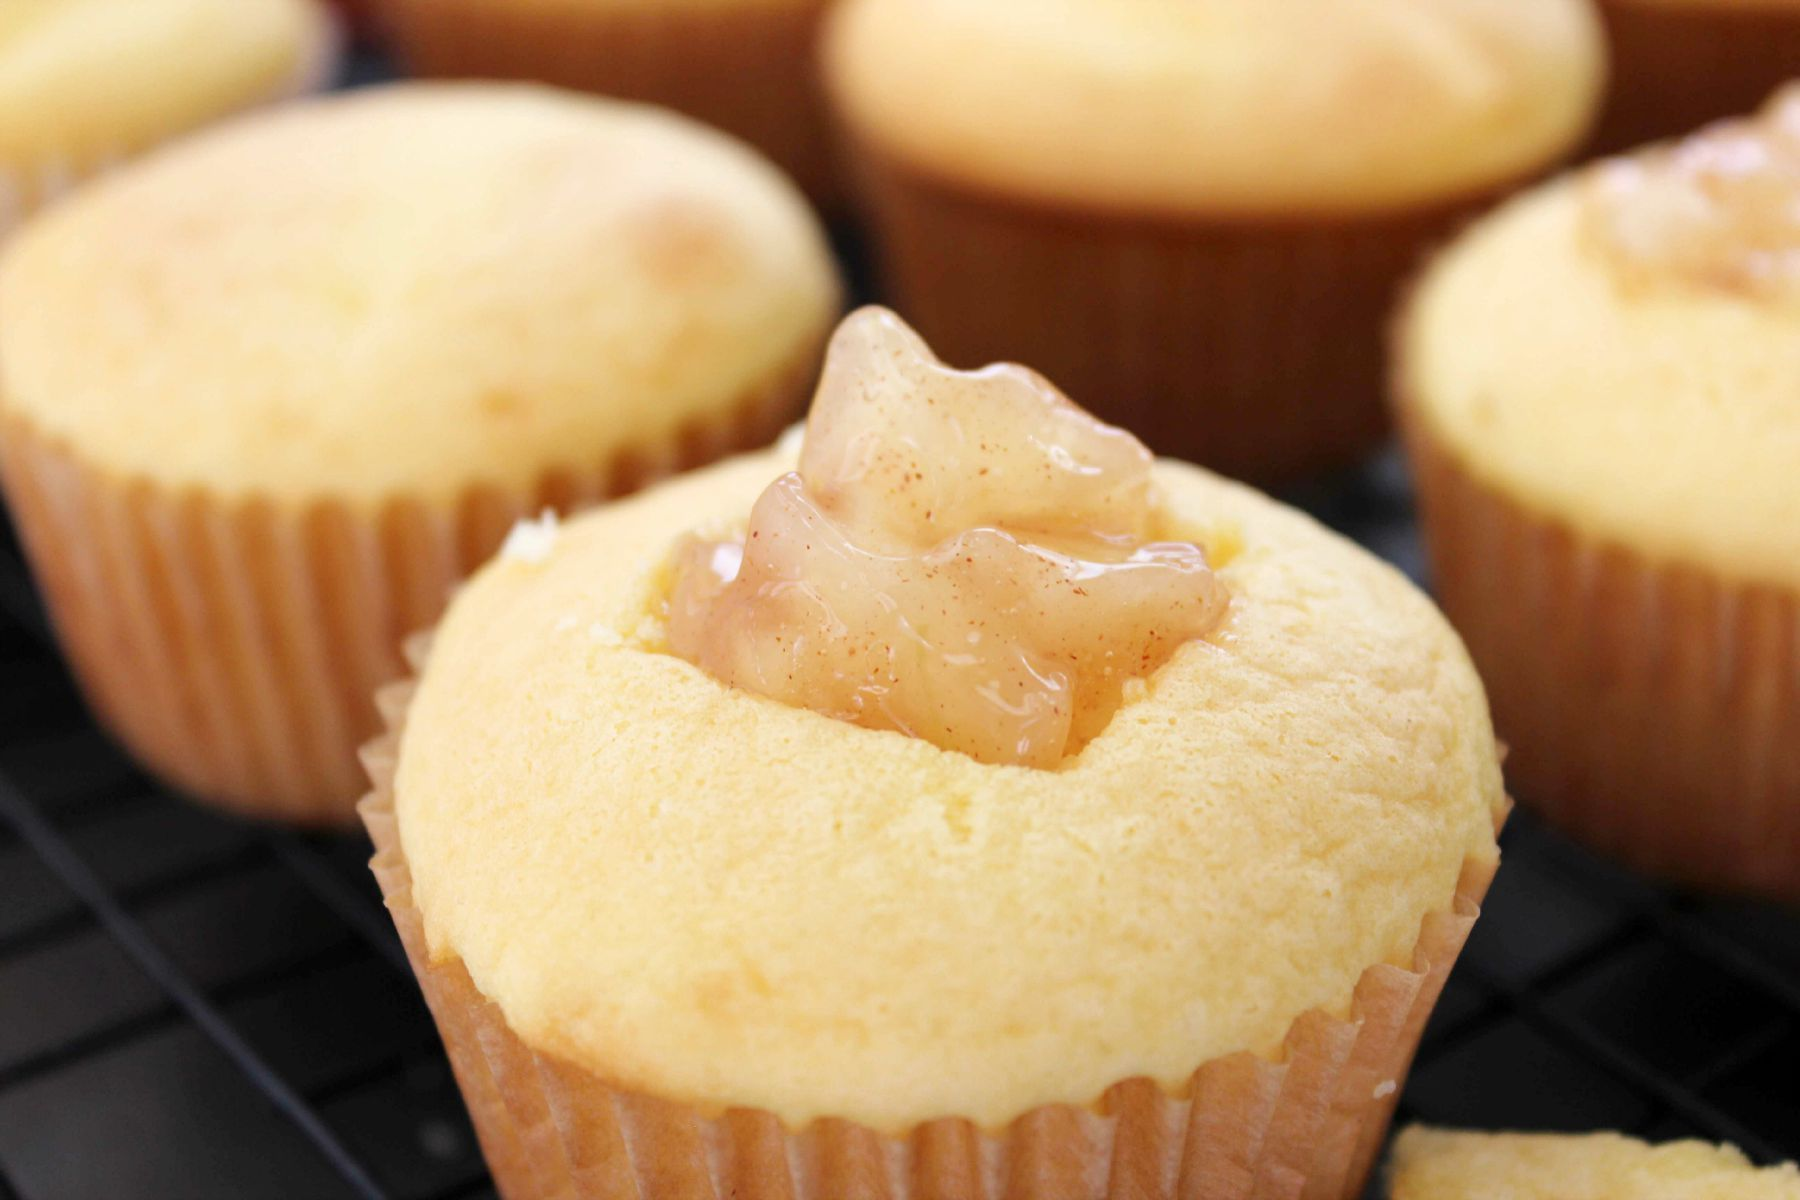 Apple Filled Cupcakes with Brown Sugar Cinnamon Buttercream Frosting - Life Love Liz #applecidercupcakeswithbrownsugar Apple Filled Cupcakes with Brown Sugar Cinnamon Buttercream Frosting